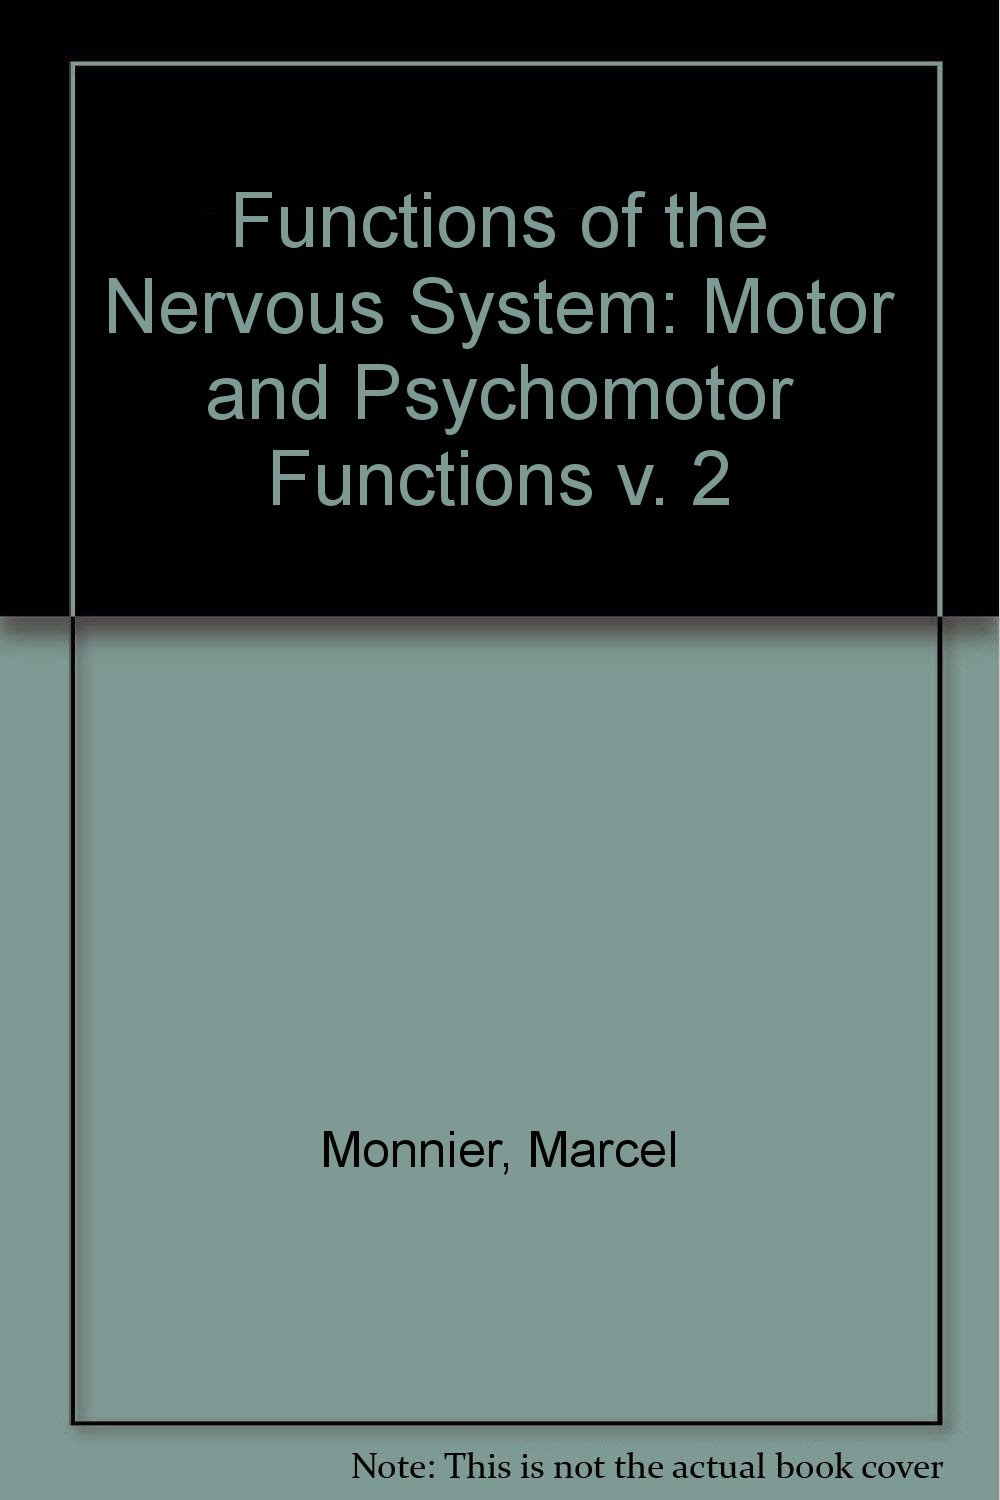 Functions Of The Nervous System Motor And Psychomotor Functions V